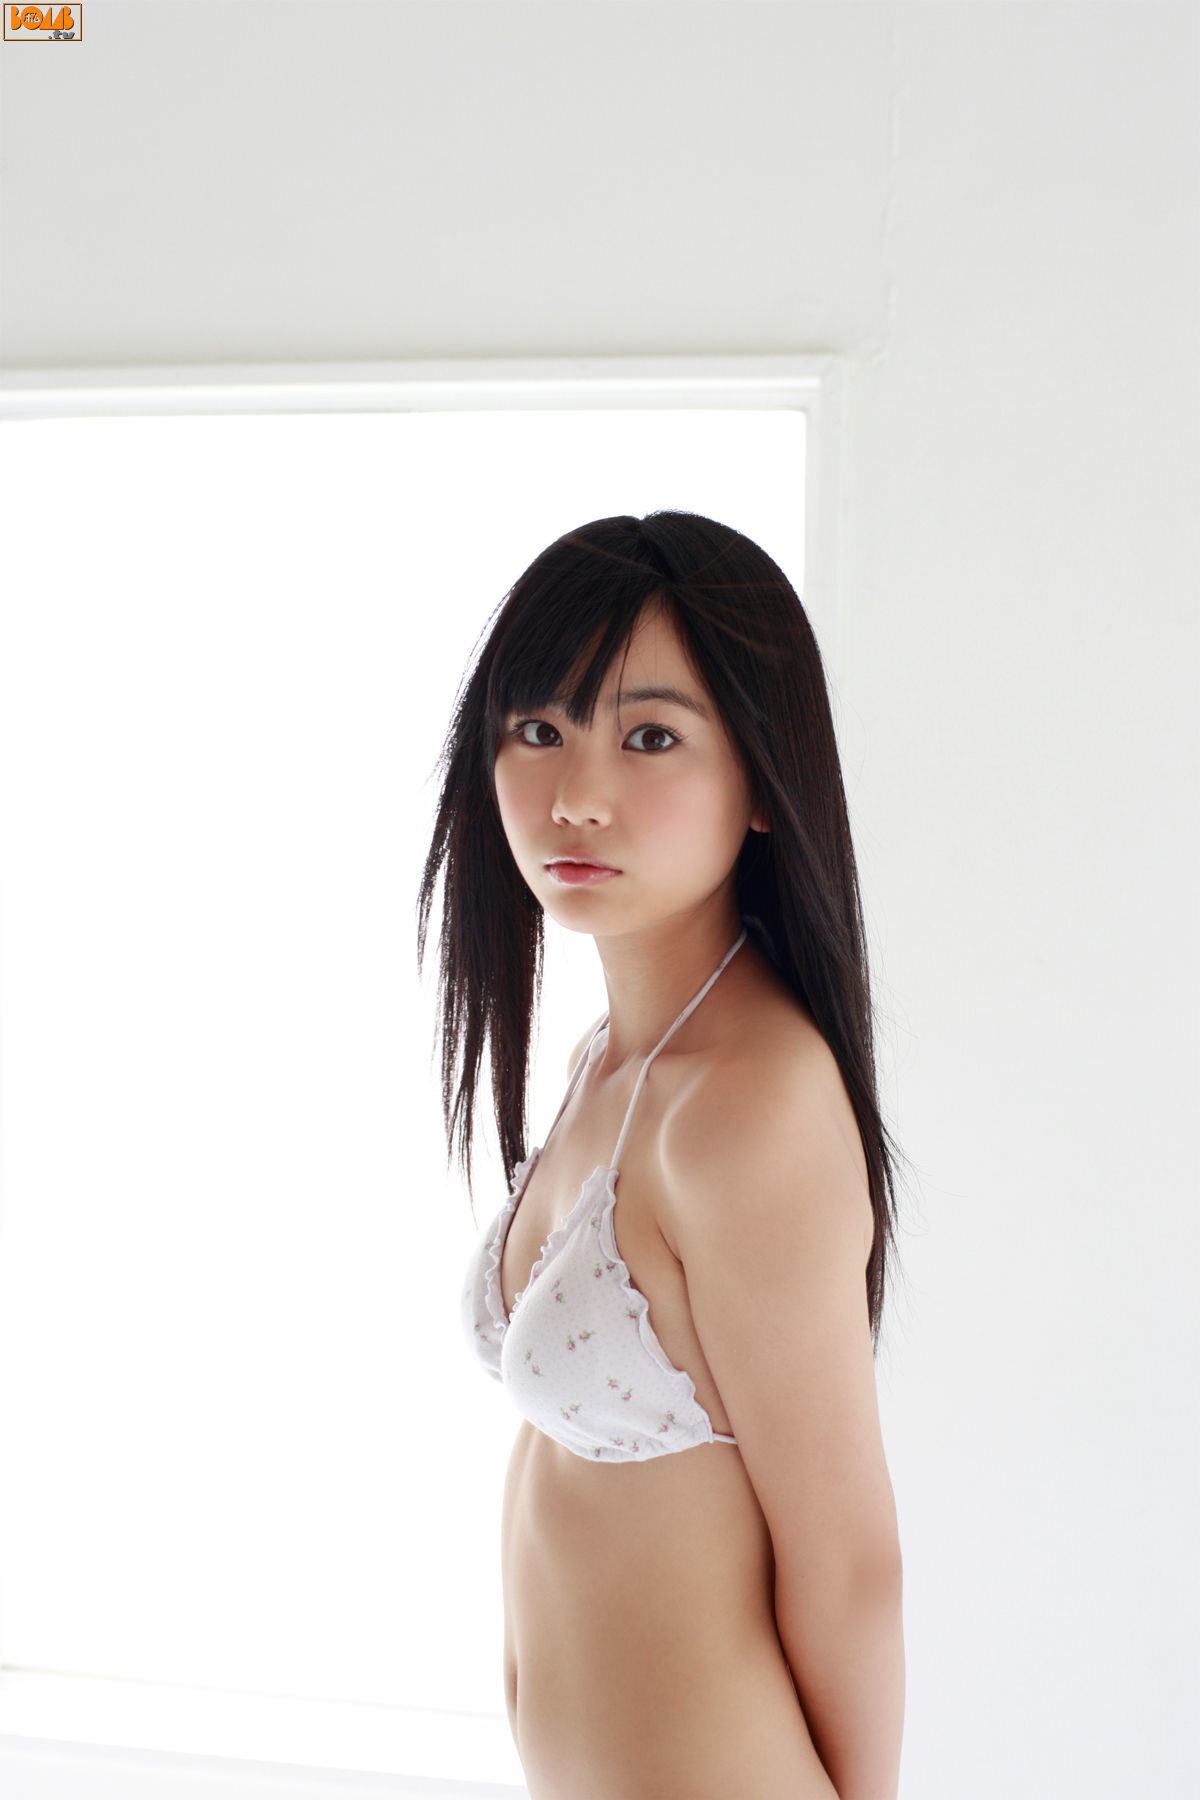 The ultimate swimsuit gravure for the next generation017